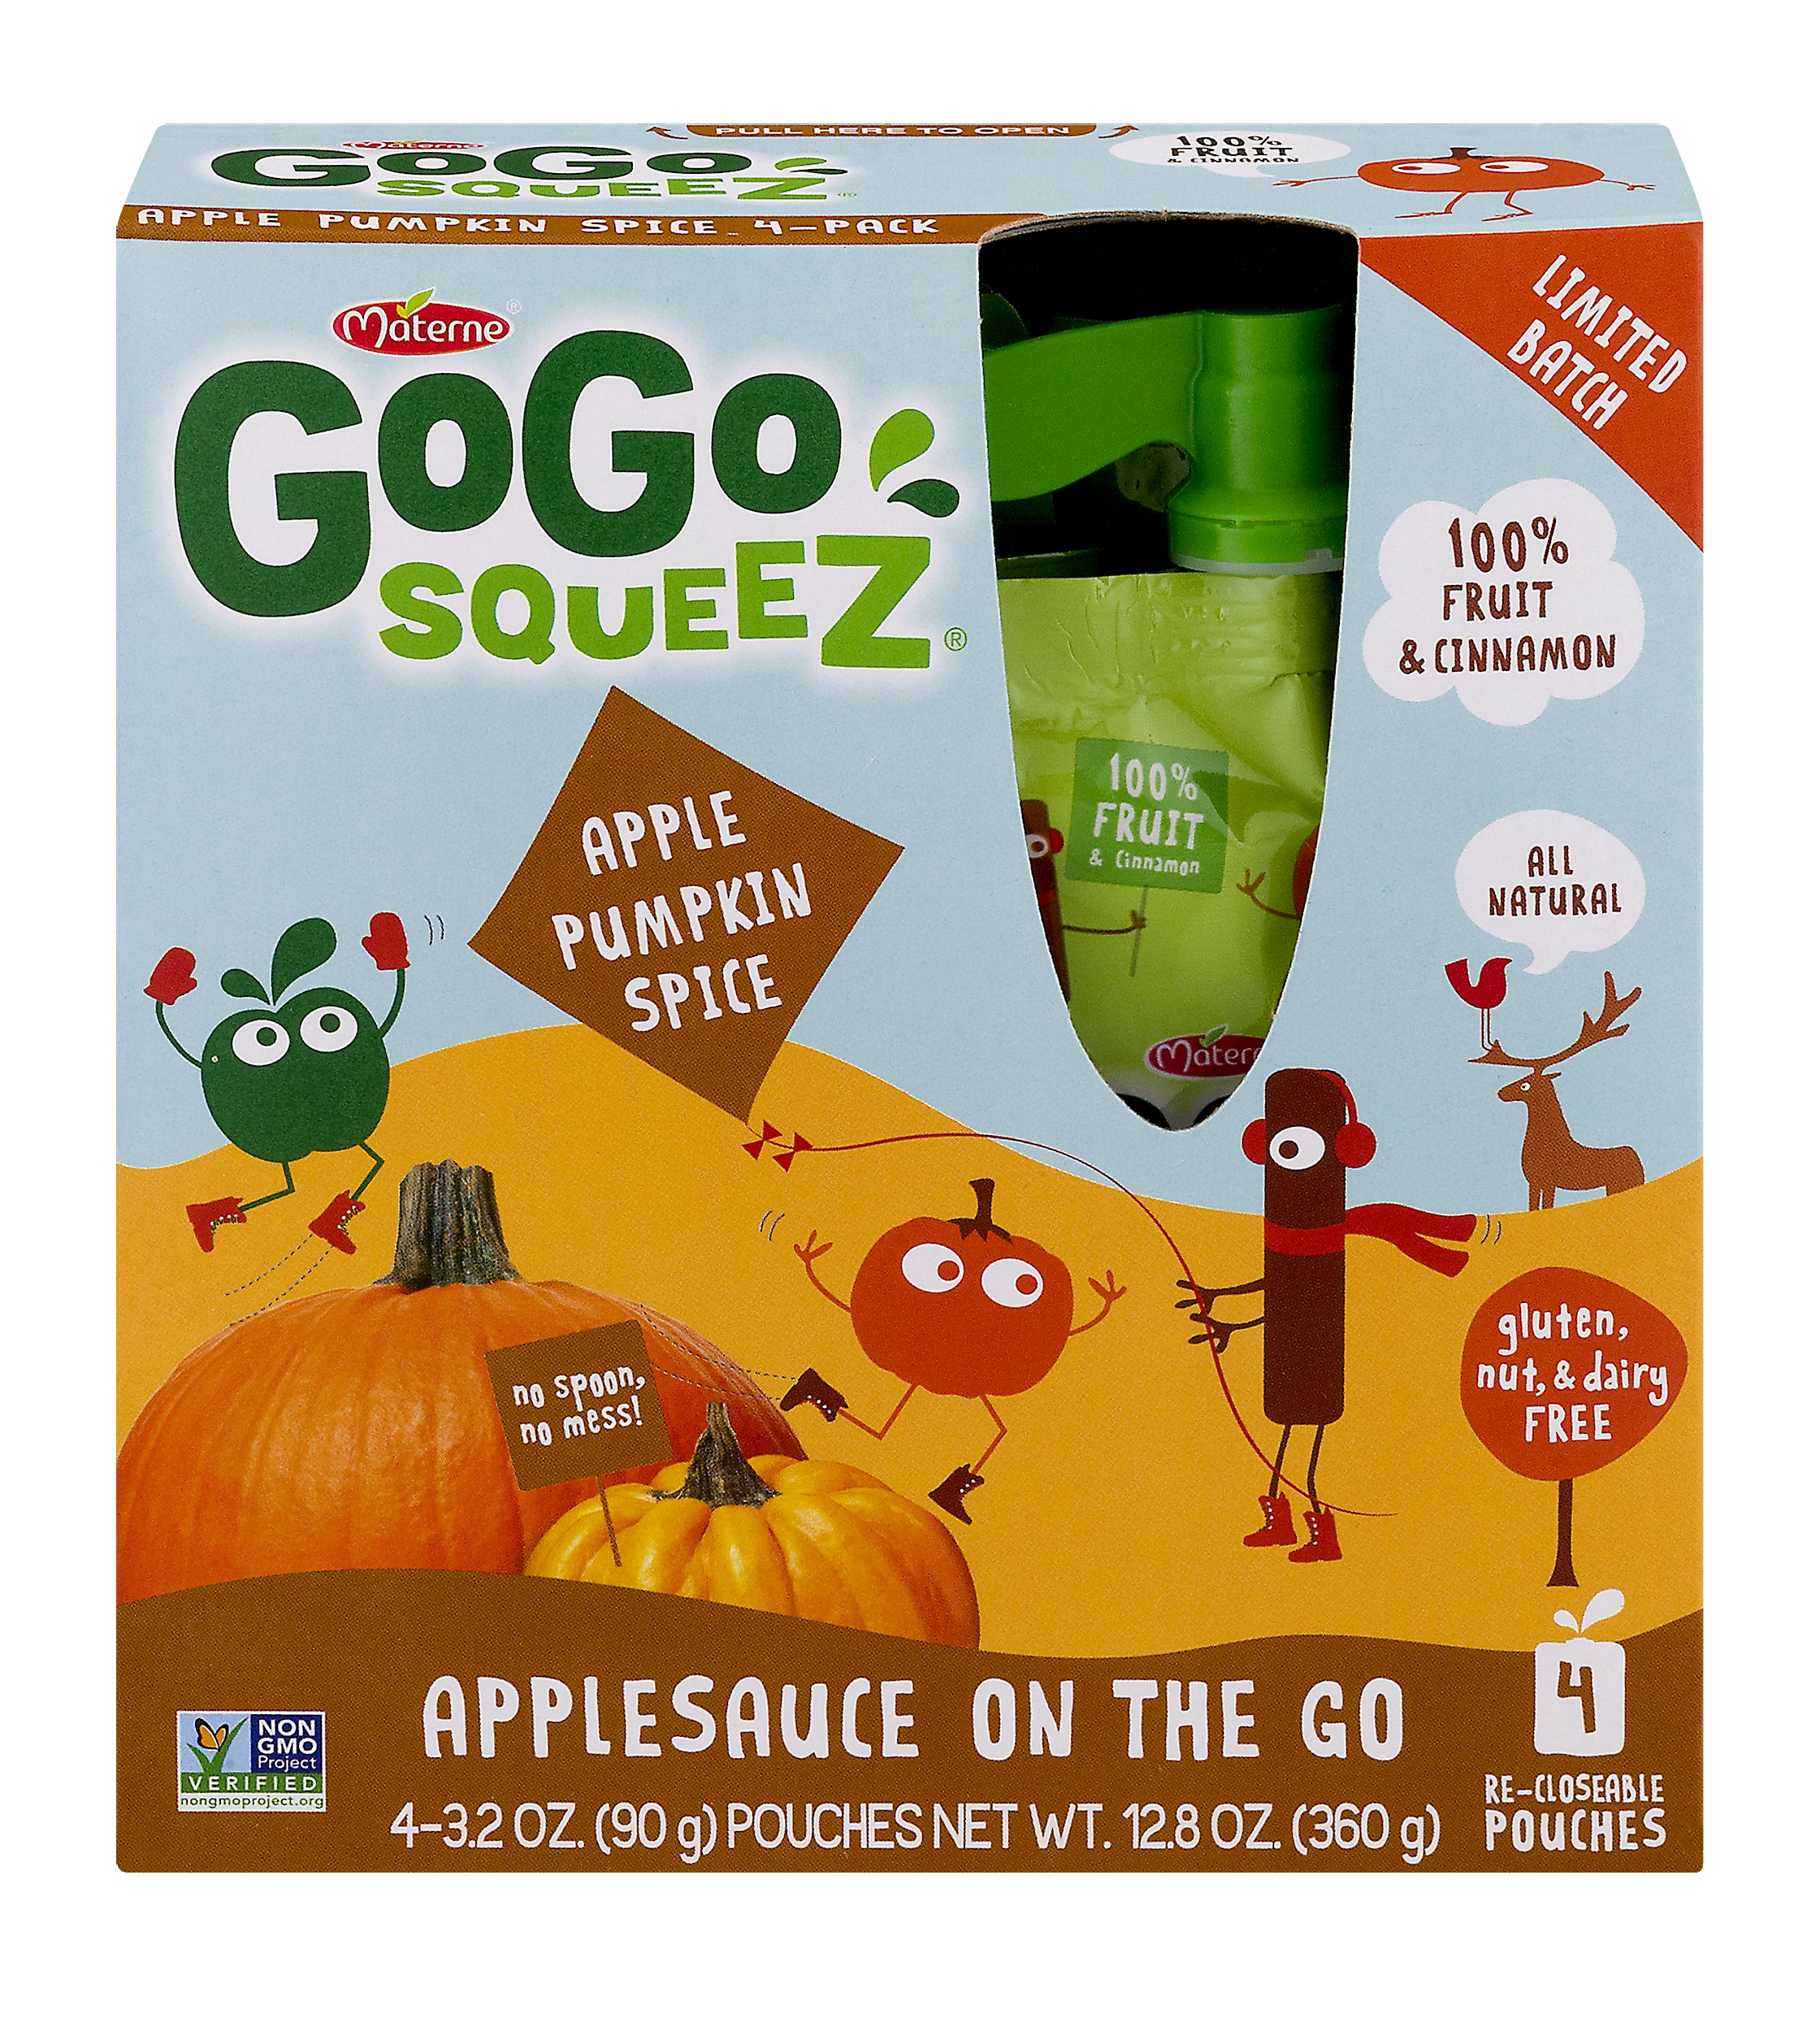 (3 Pack) GoGo squeeZ Apple Pumpkin Spice Applesauce on the Go 4-3.2 oz. Pouches